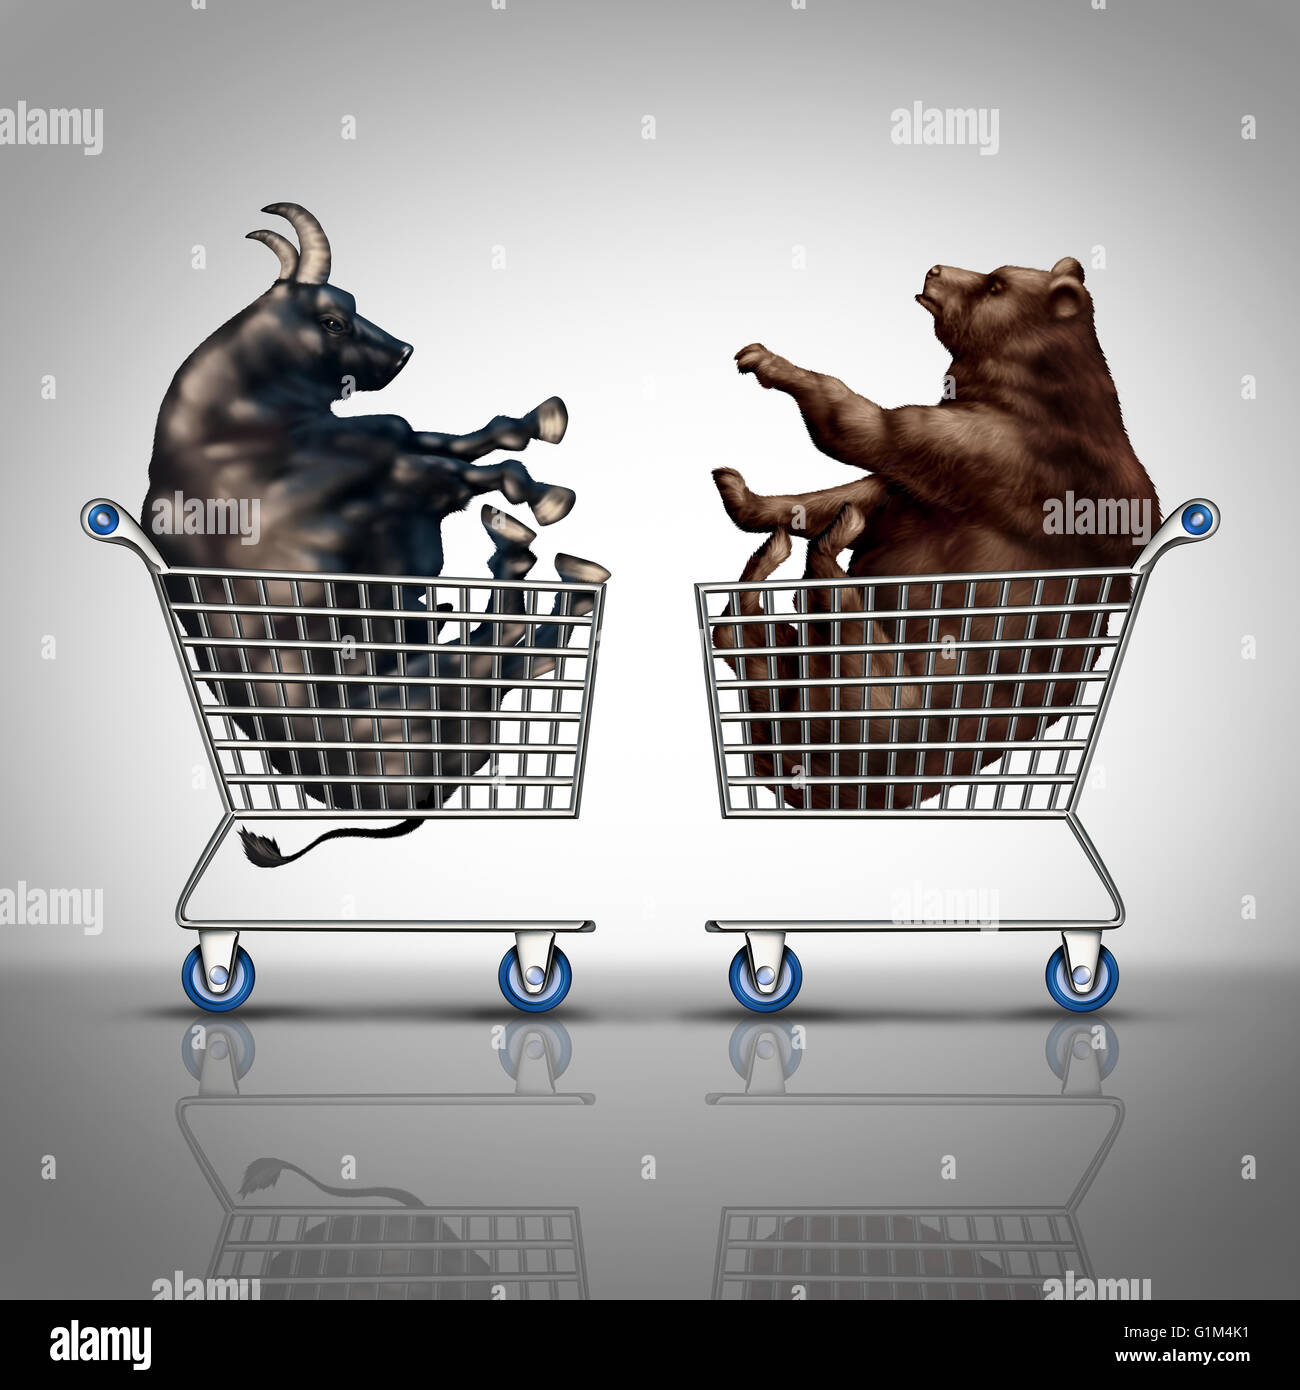 Stock market shopping and trading decision financial concept as a bear and a bull inside a shop cart as an investing - Stock Image